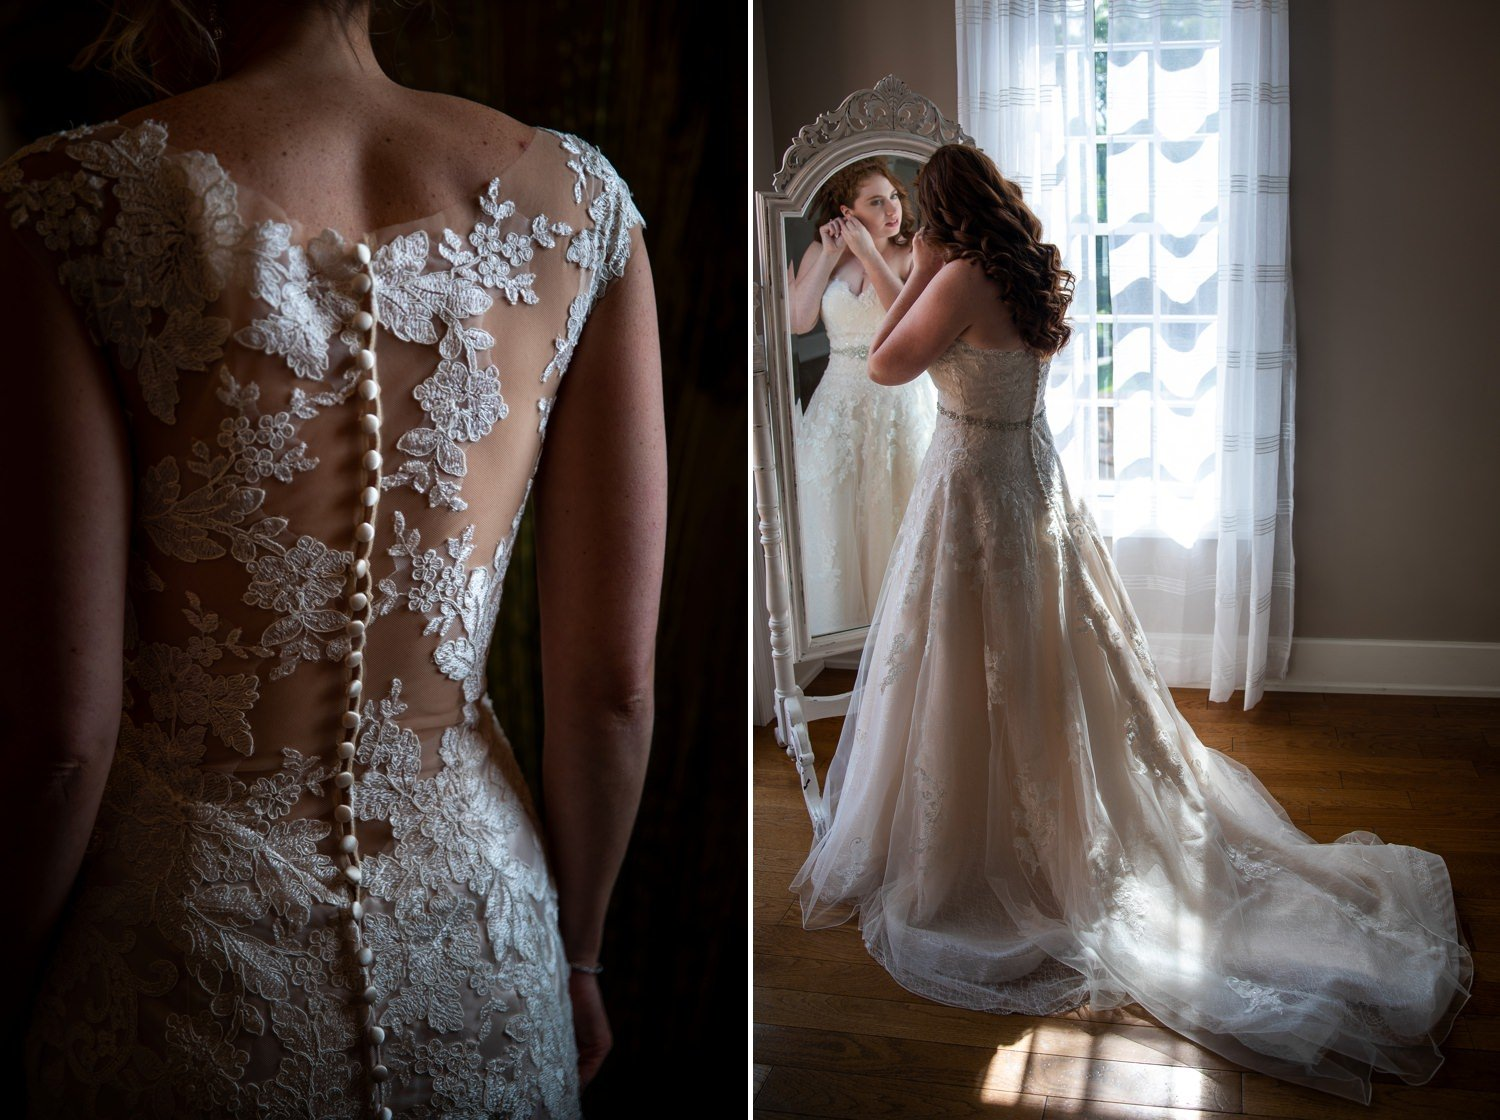 A bride looking in the mirror as she puts her wedding dress on.